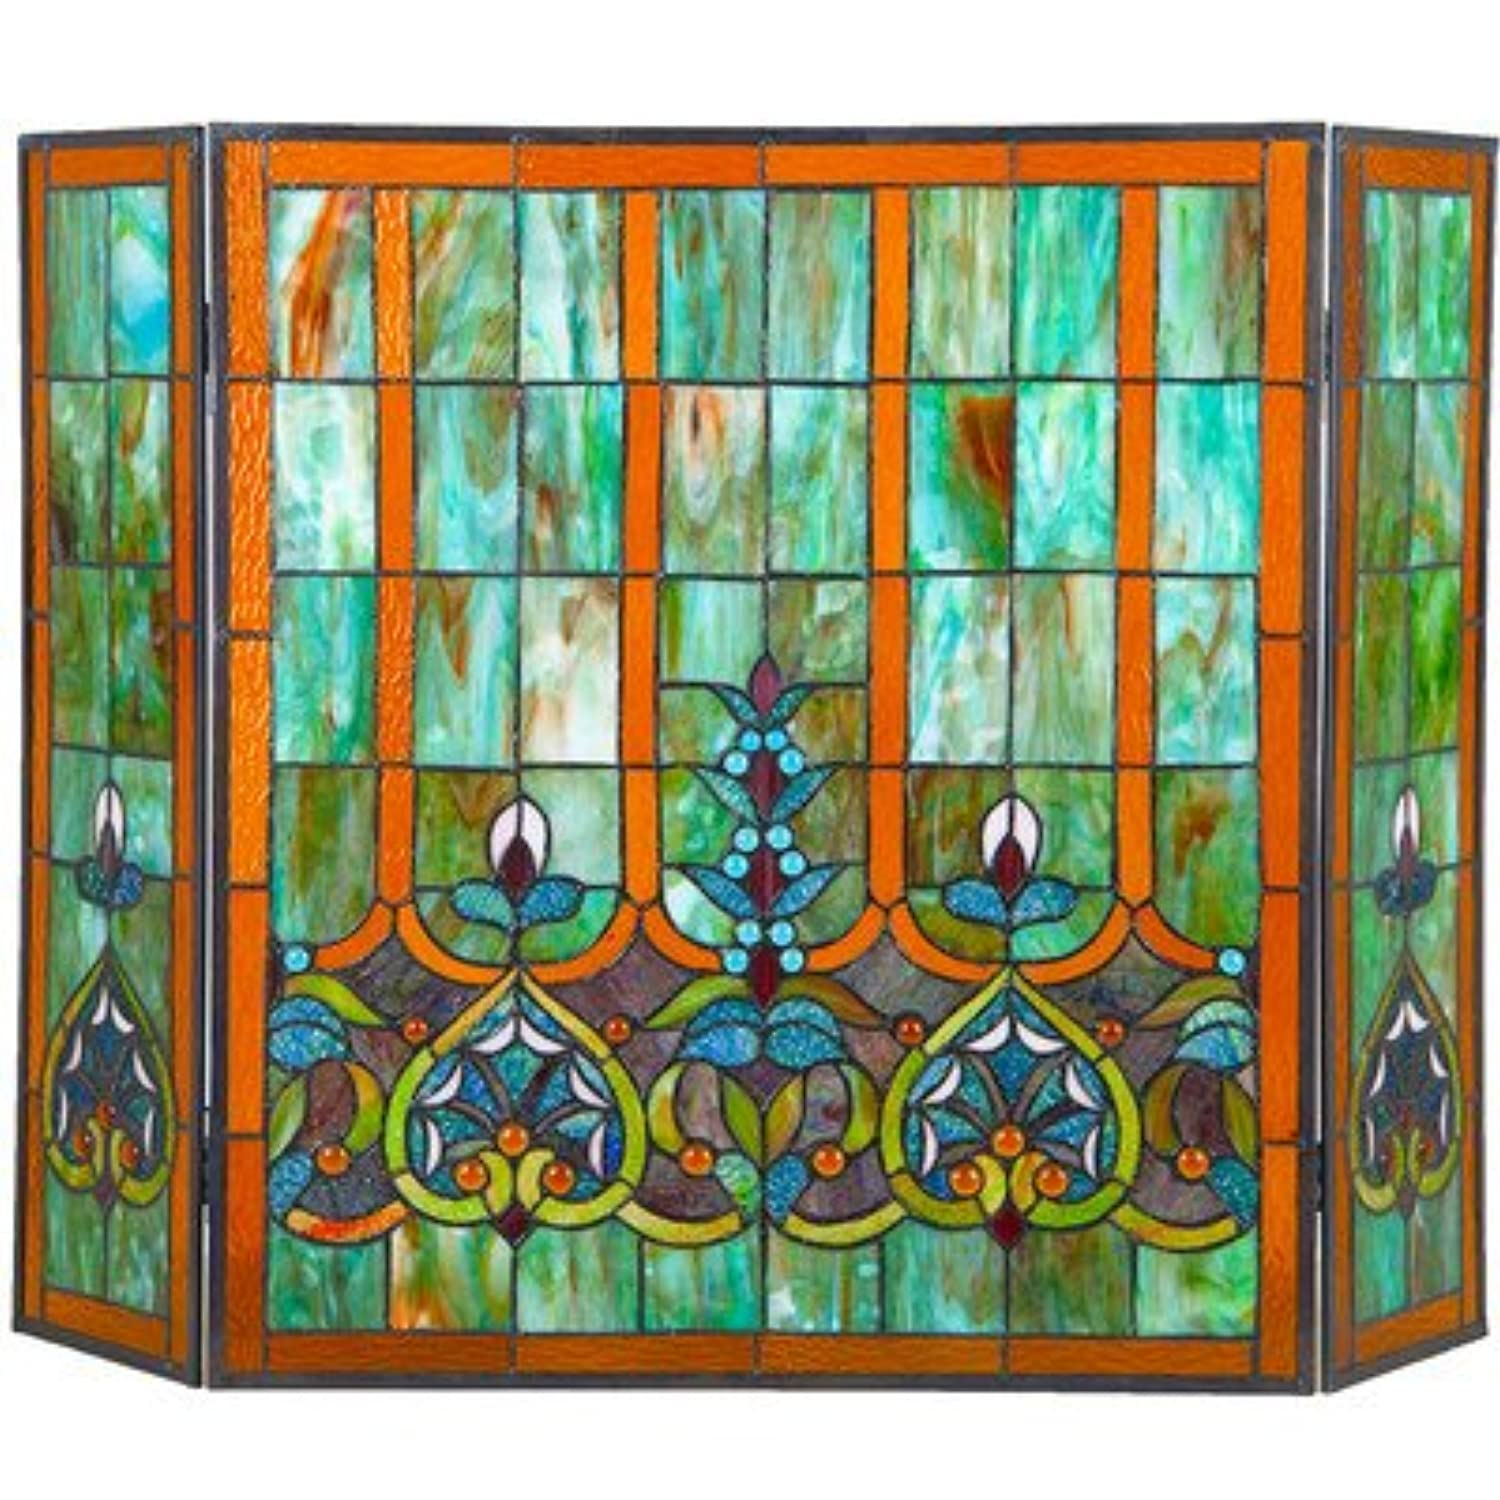 3 Panel Stained Glass Fireplace Screen EverAfterGuide